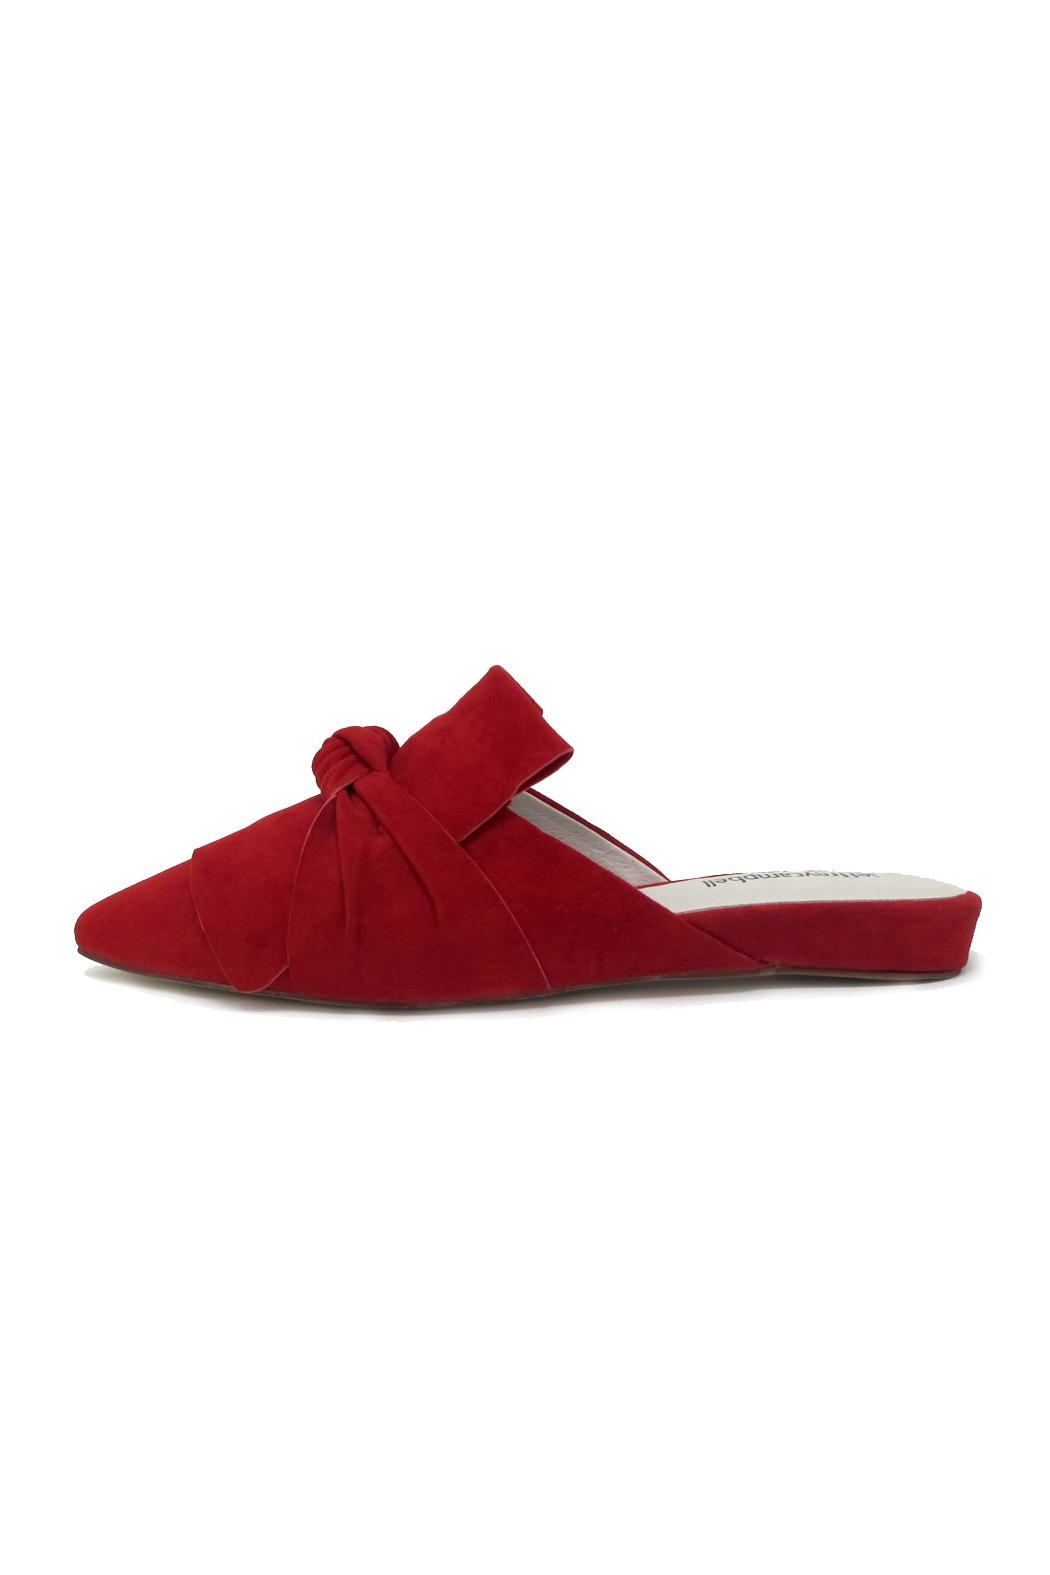 Jeffrey Campbell Dello Red Mule - Main Image